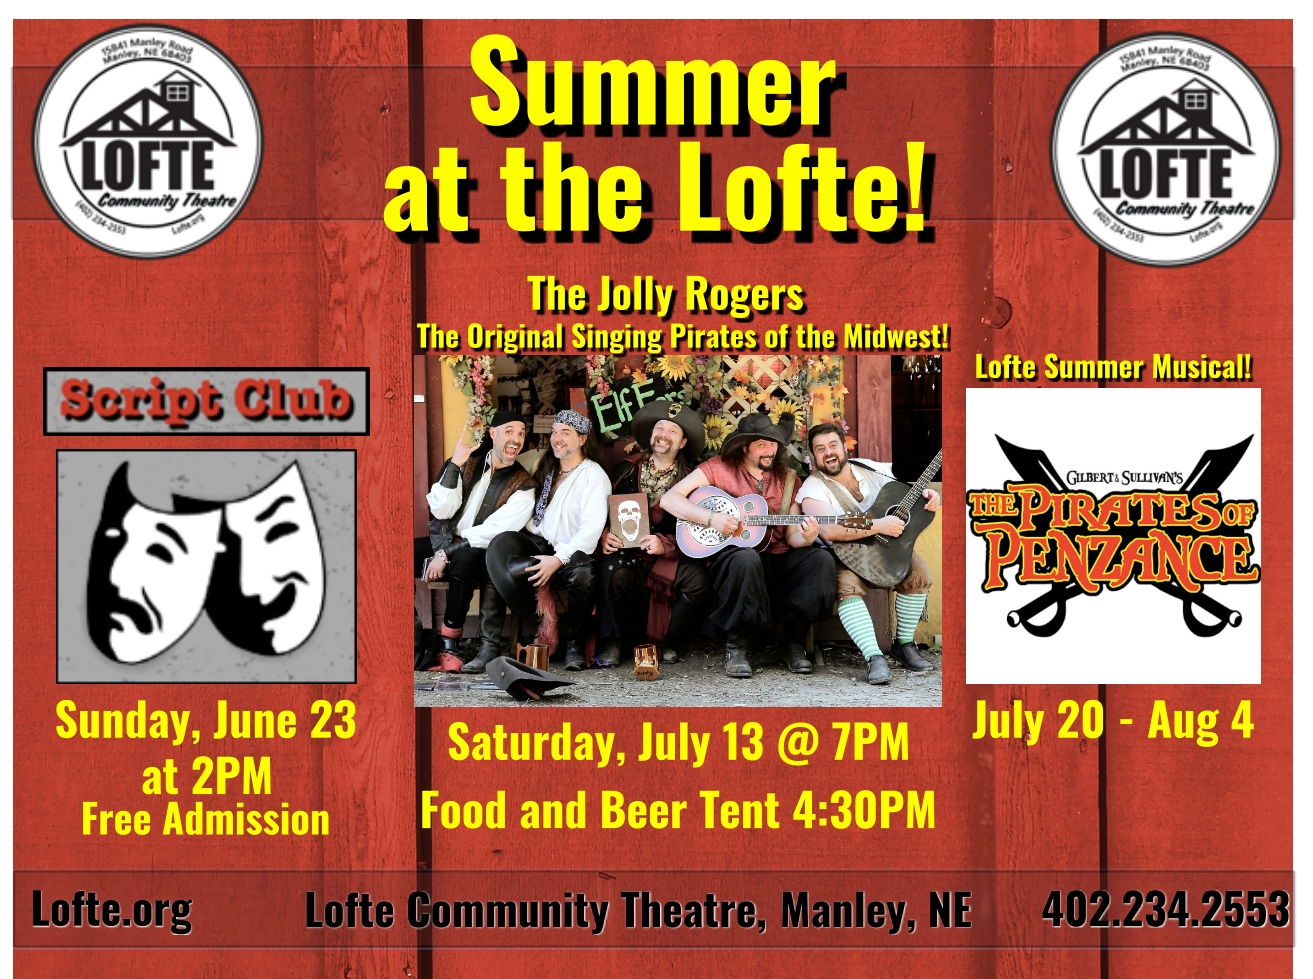 Summer at the Lofte 1